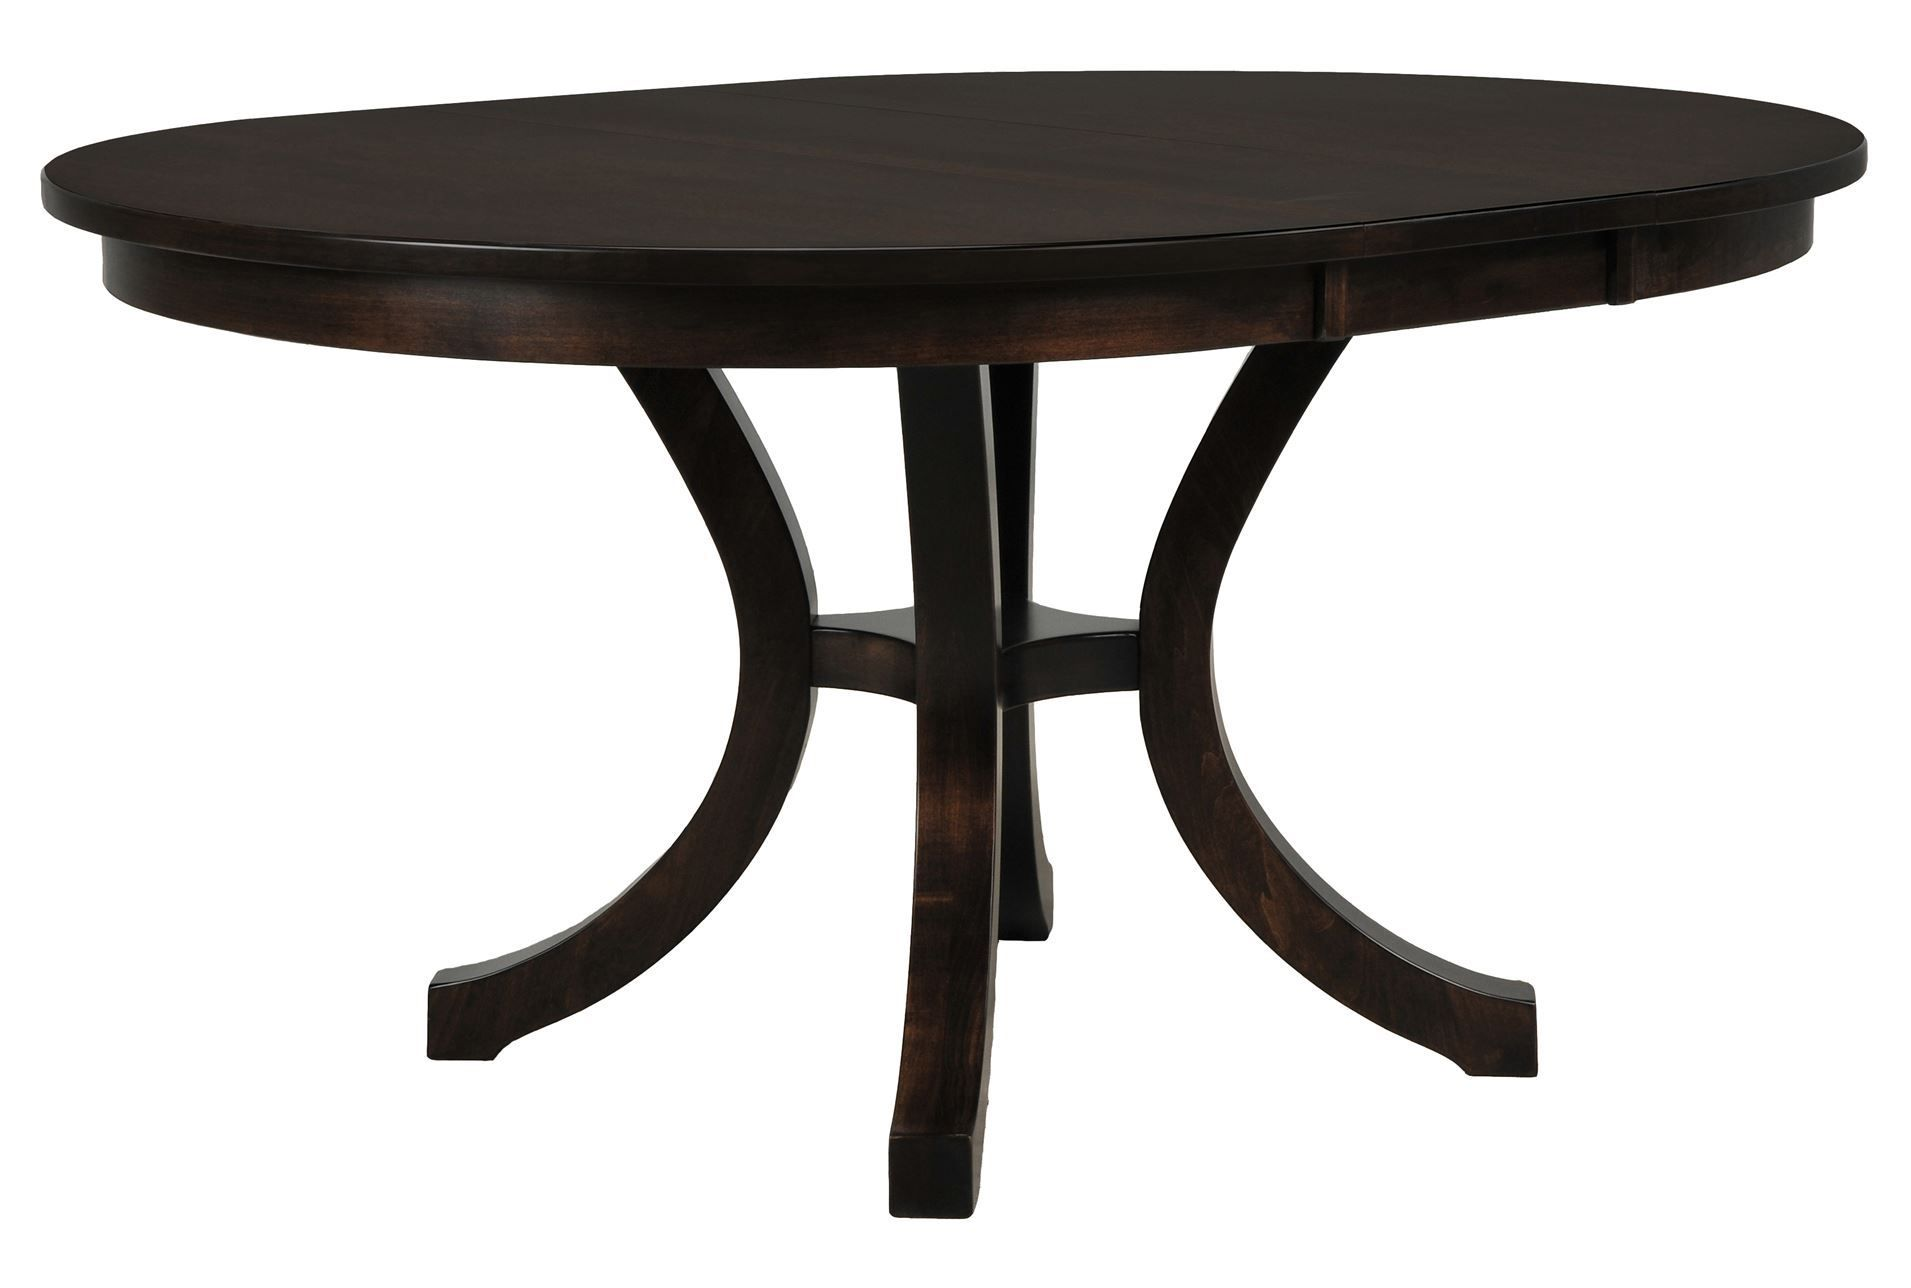 Graham Oval Extension Dining Table 48 W X 60 D X 30 H No Leaf